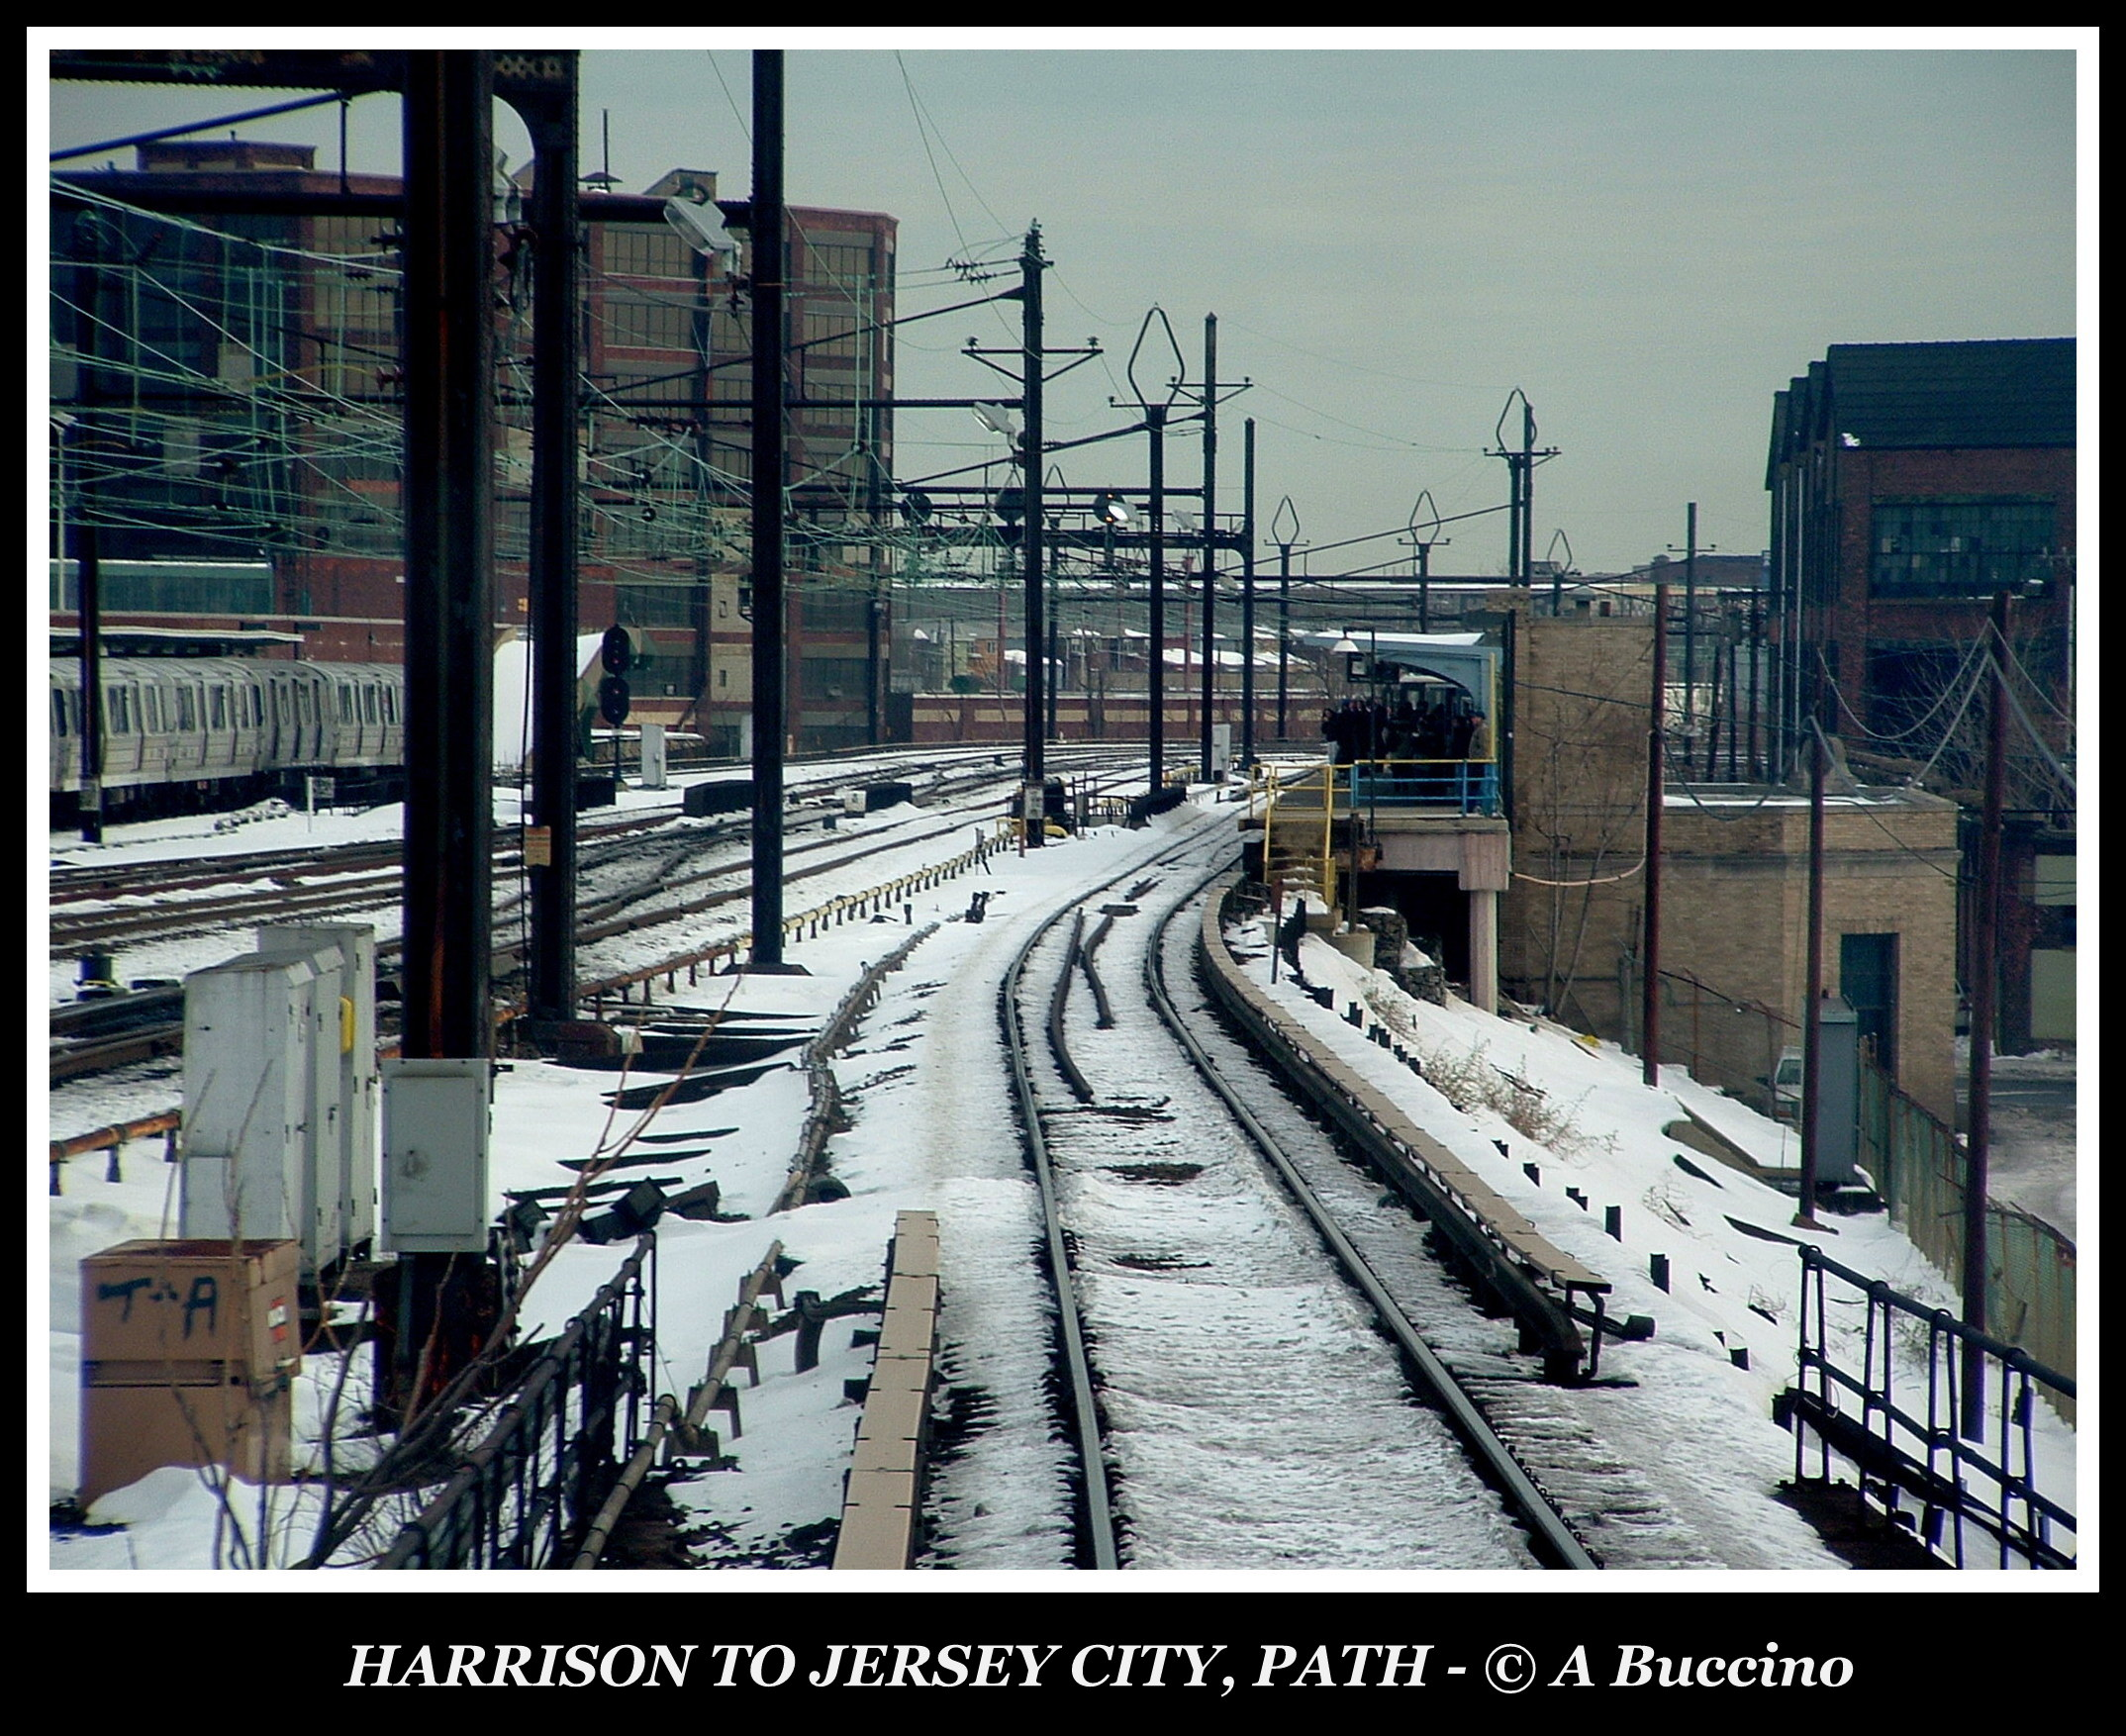 PATH commuter line, Coming into Harrison Station, Harrison, NJ